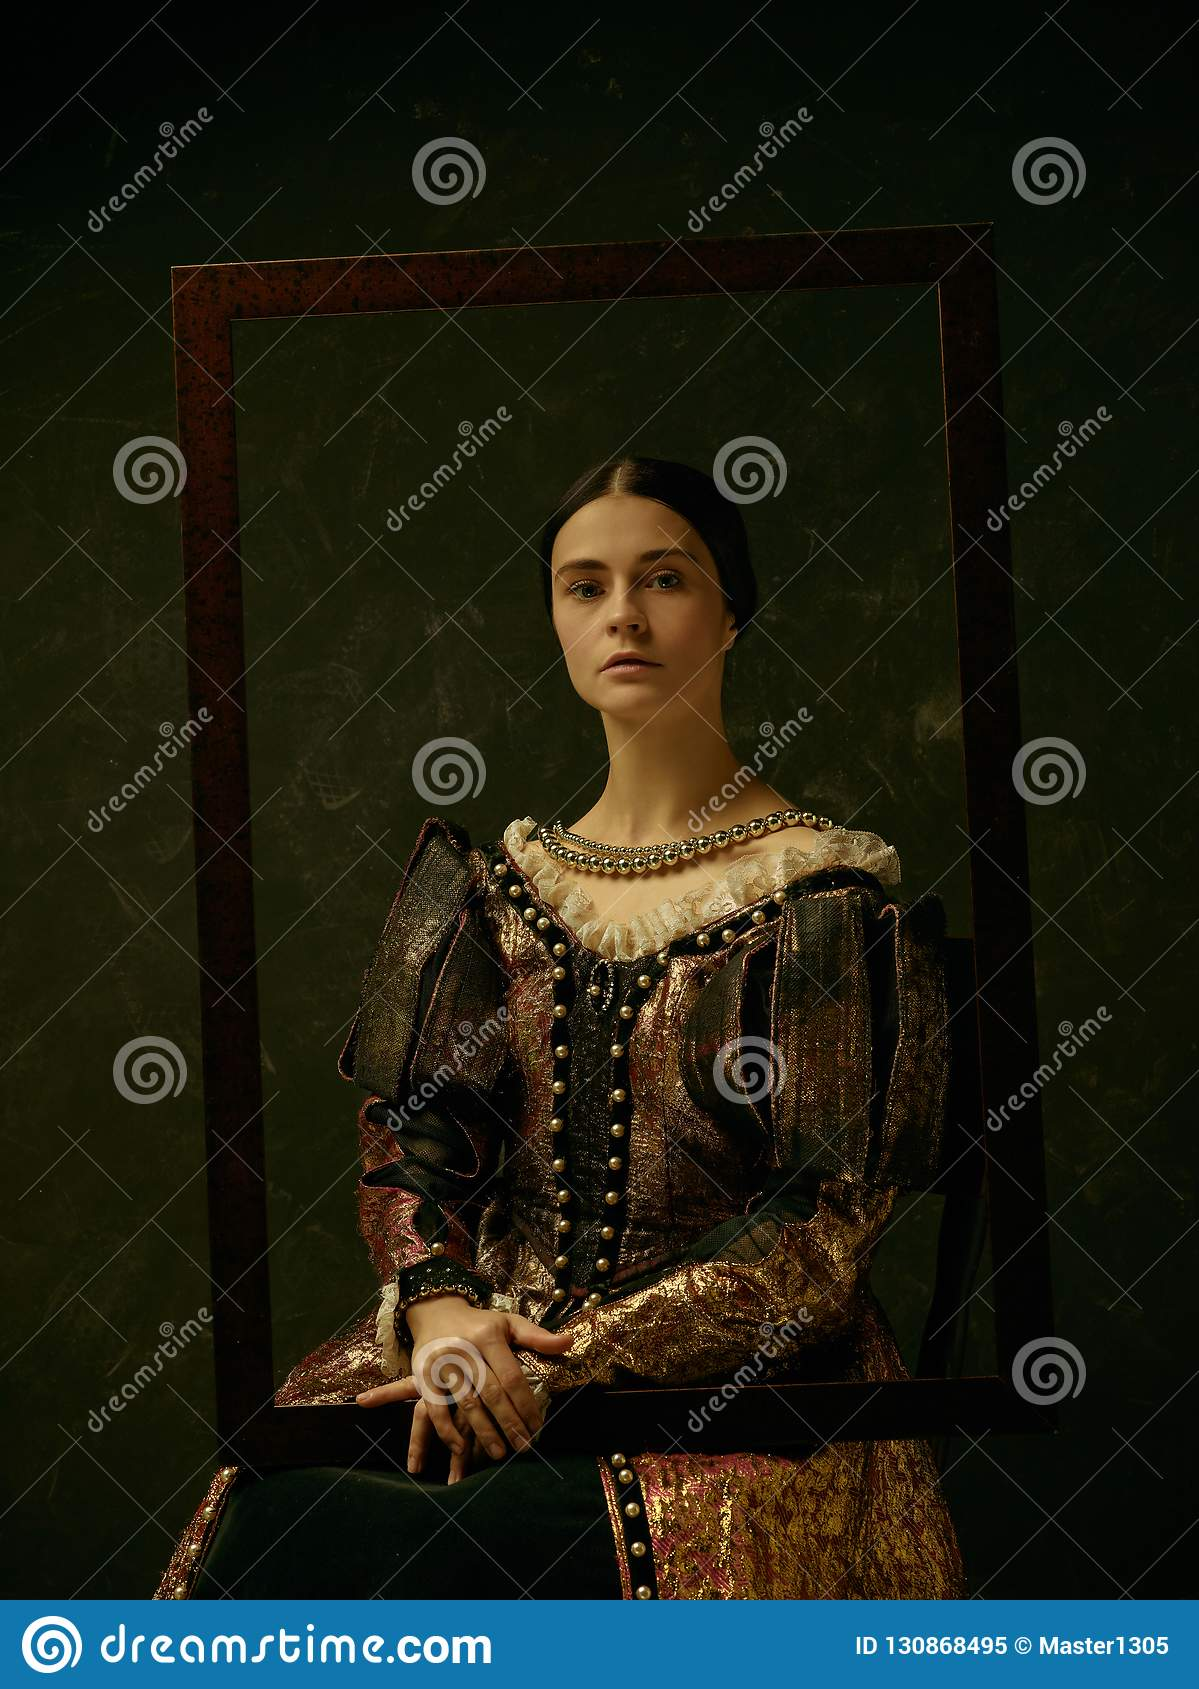 Portrait of a girl wearing a retro princess or countess dress